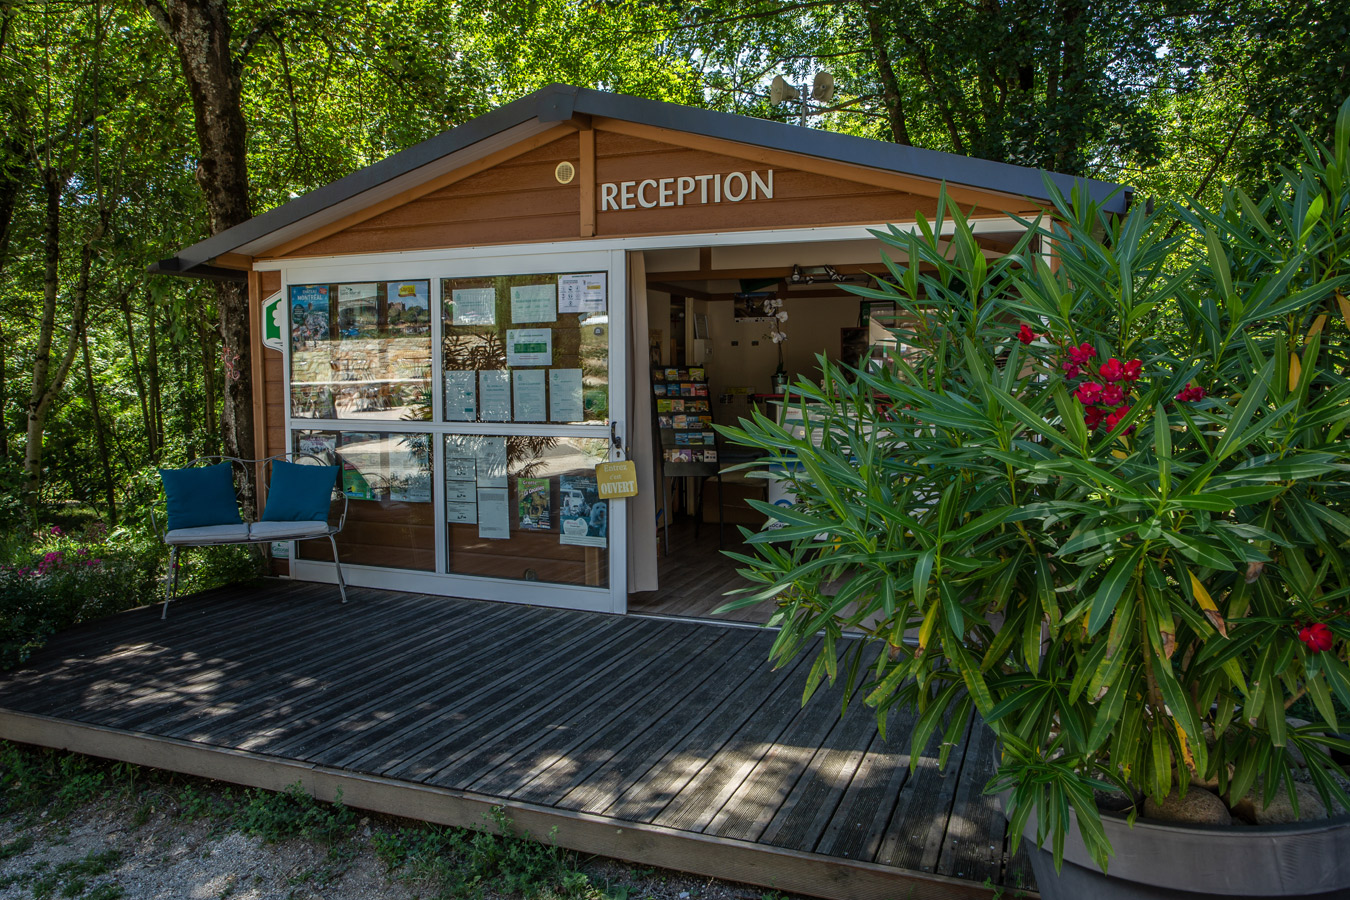 The campsite's reception